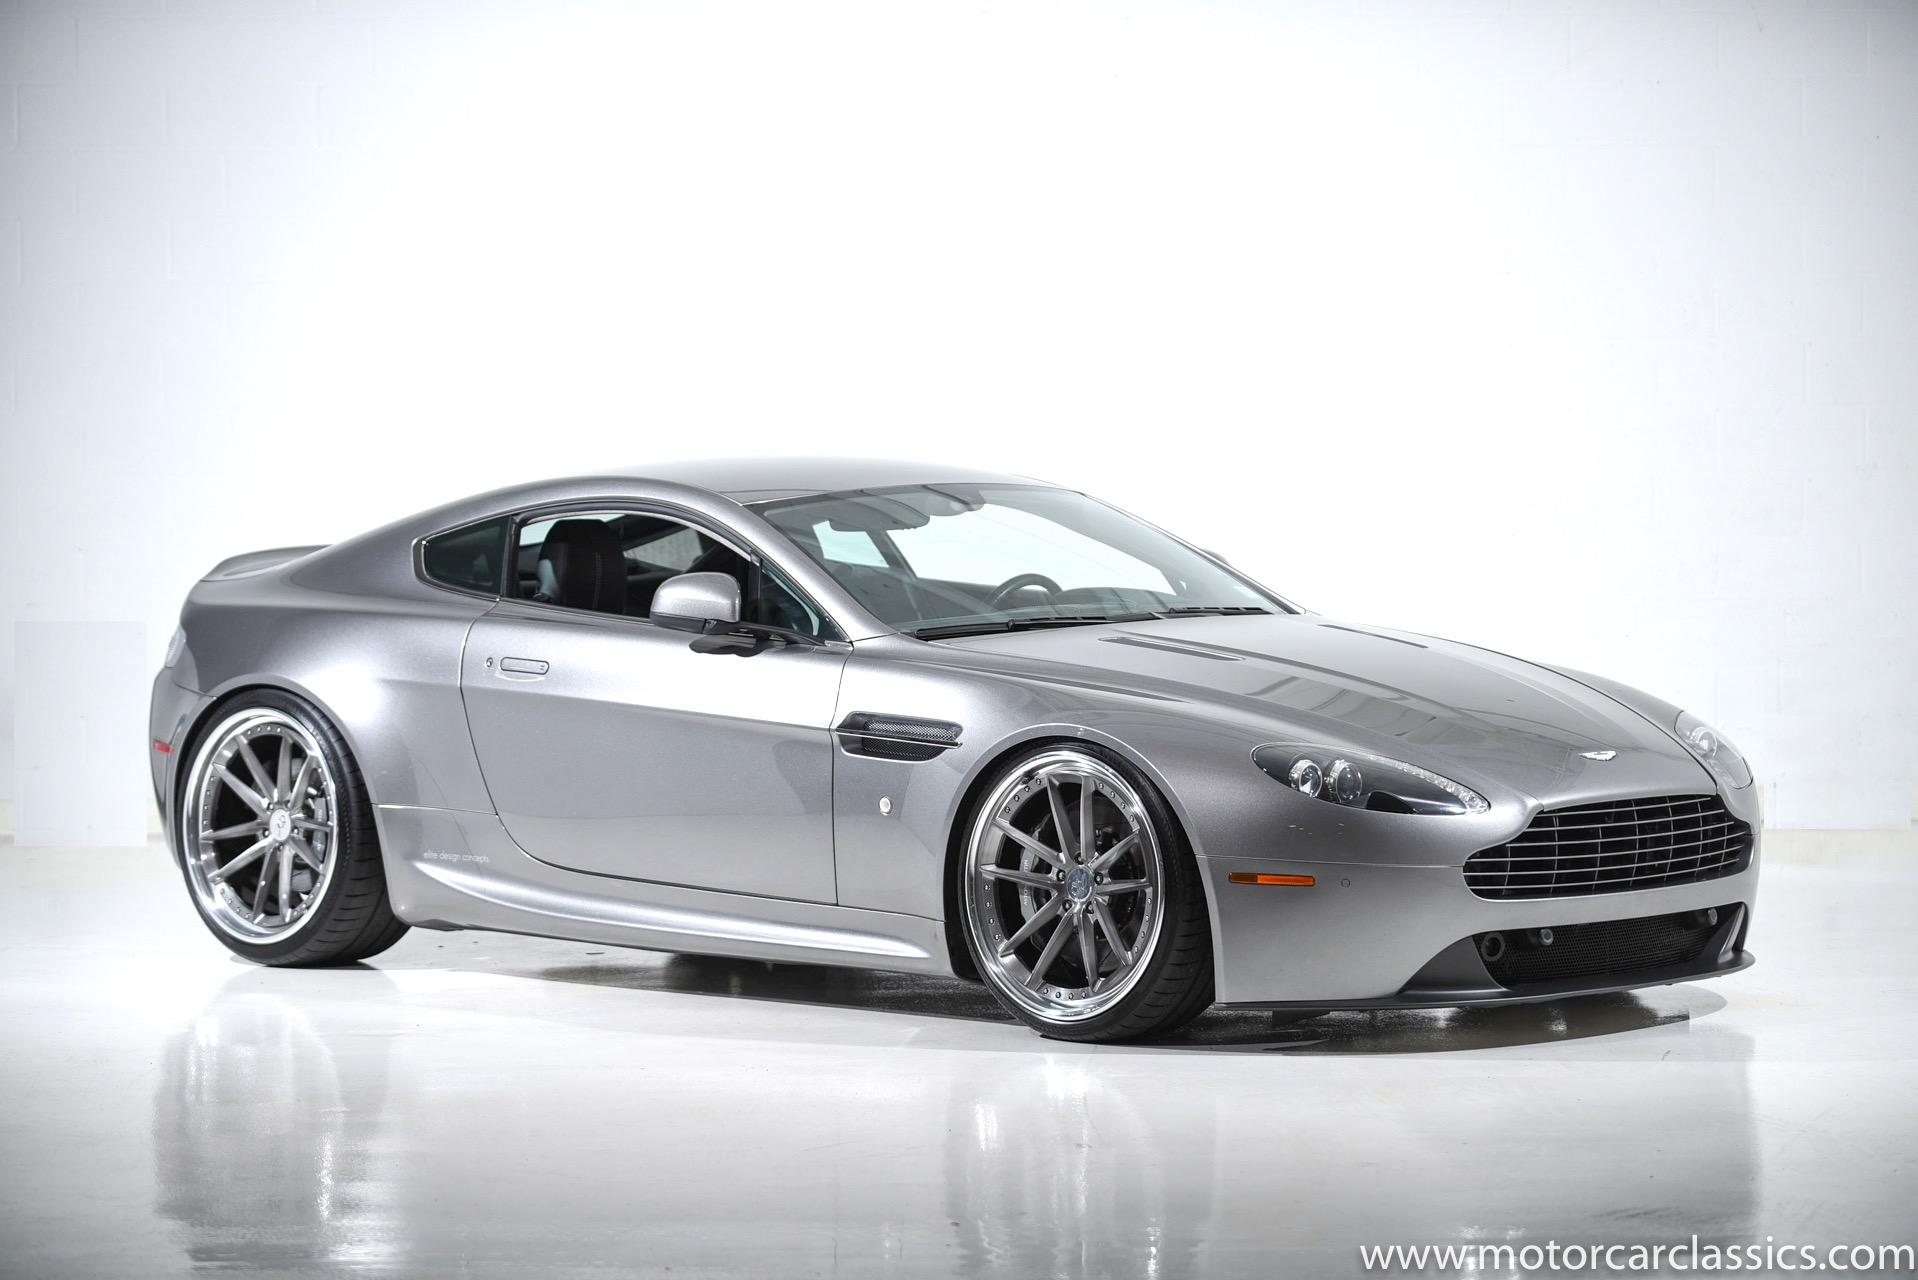 2013 aston martin v8 vantage motorcar classics exotic and classic car dealership farmingdale ny. Black Bedroom Furniture Sets. Home Design Ideas